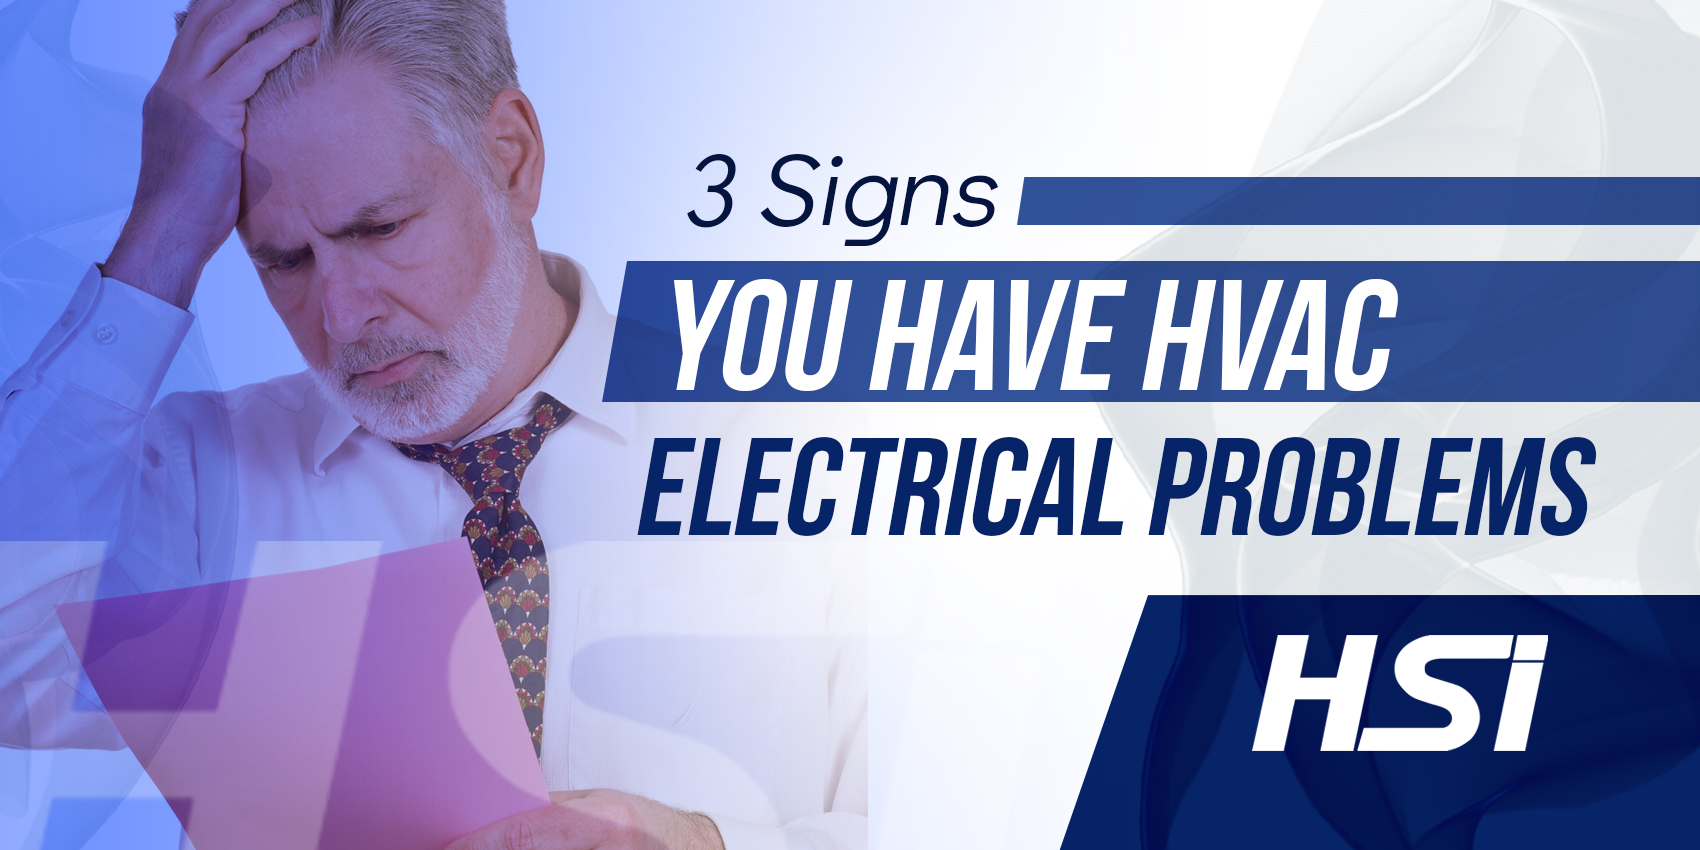 3 Signs You Have HVAC Electrical Problems